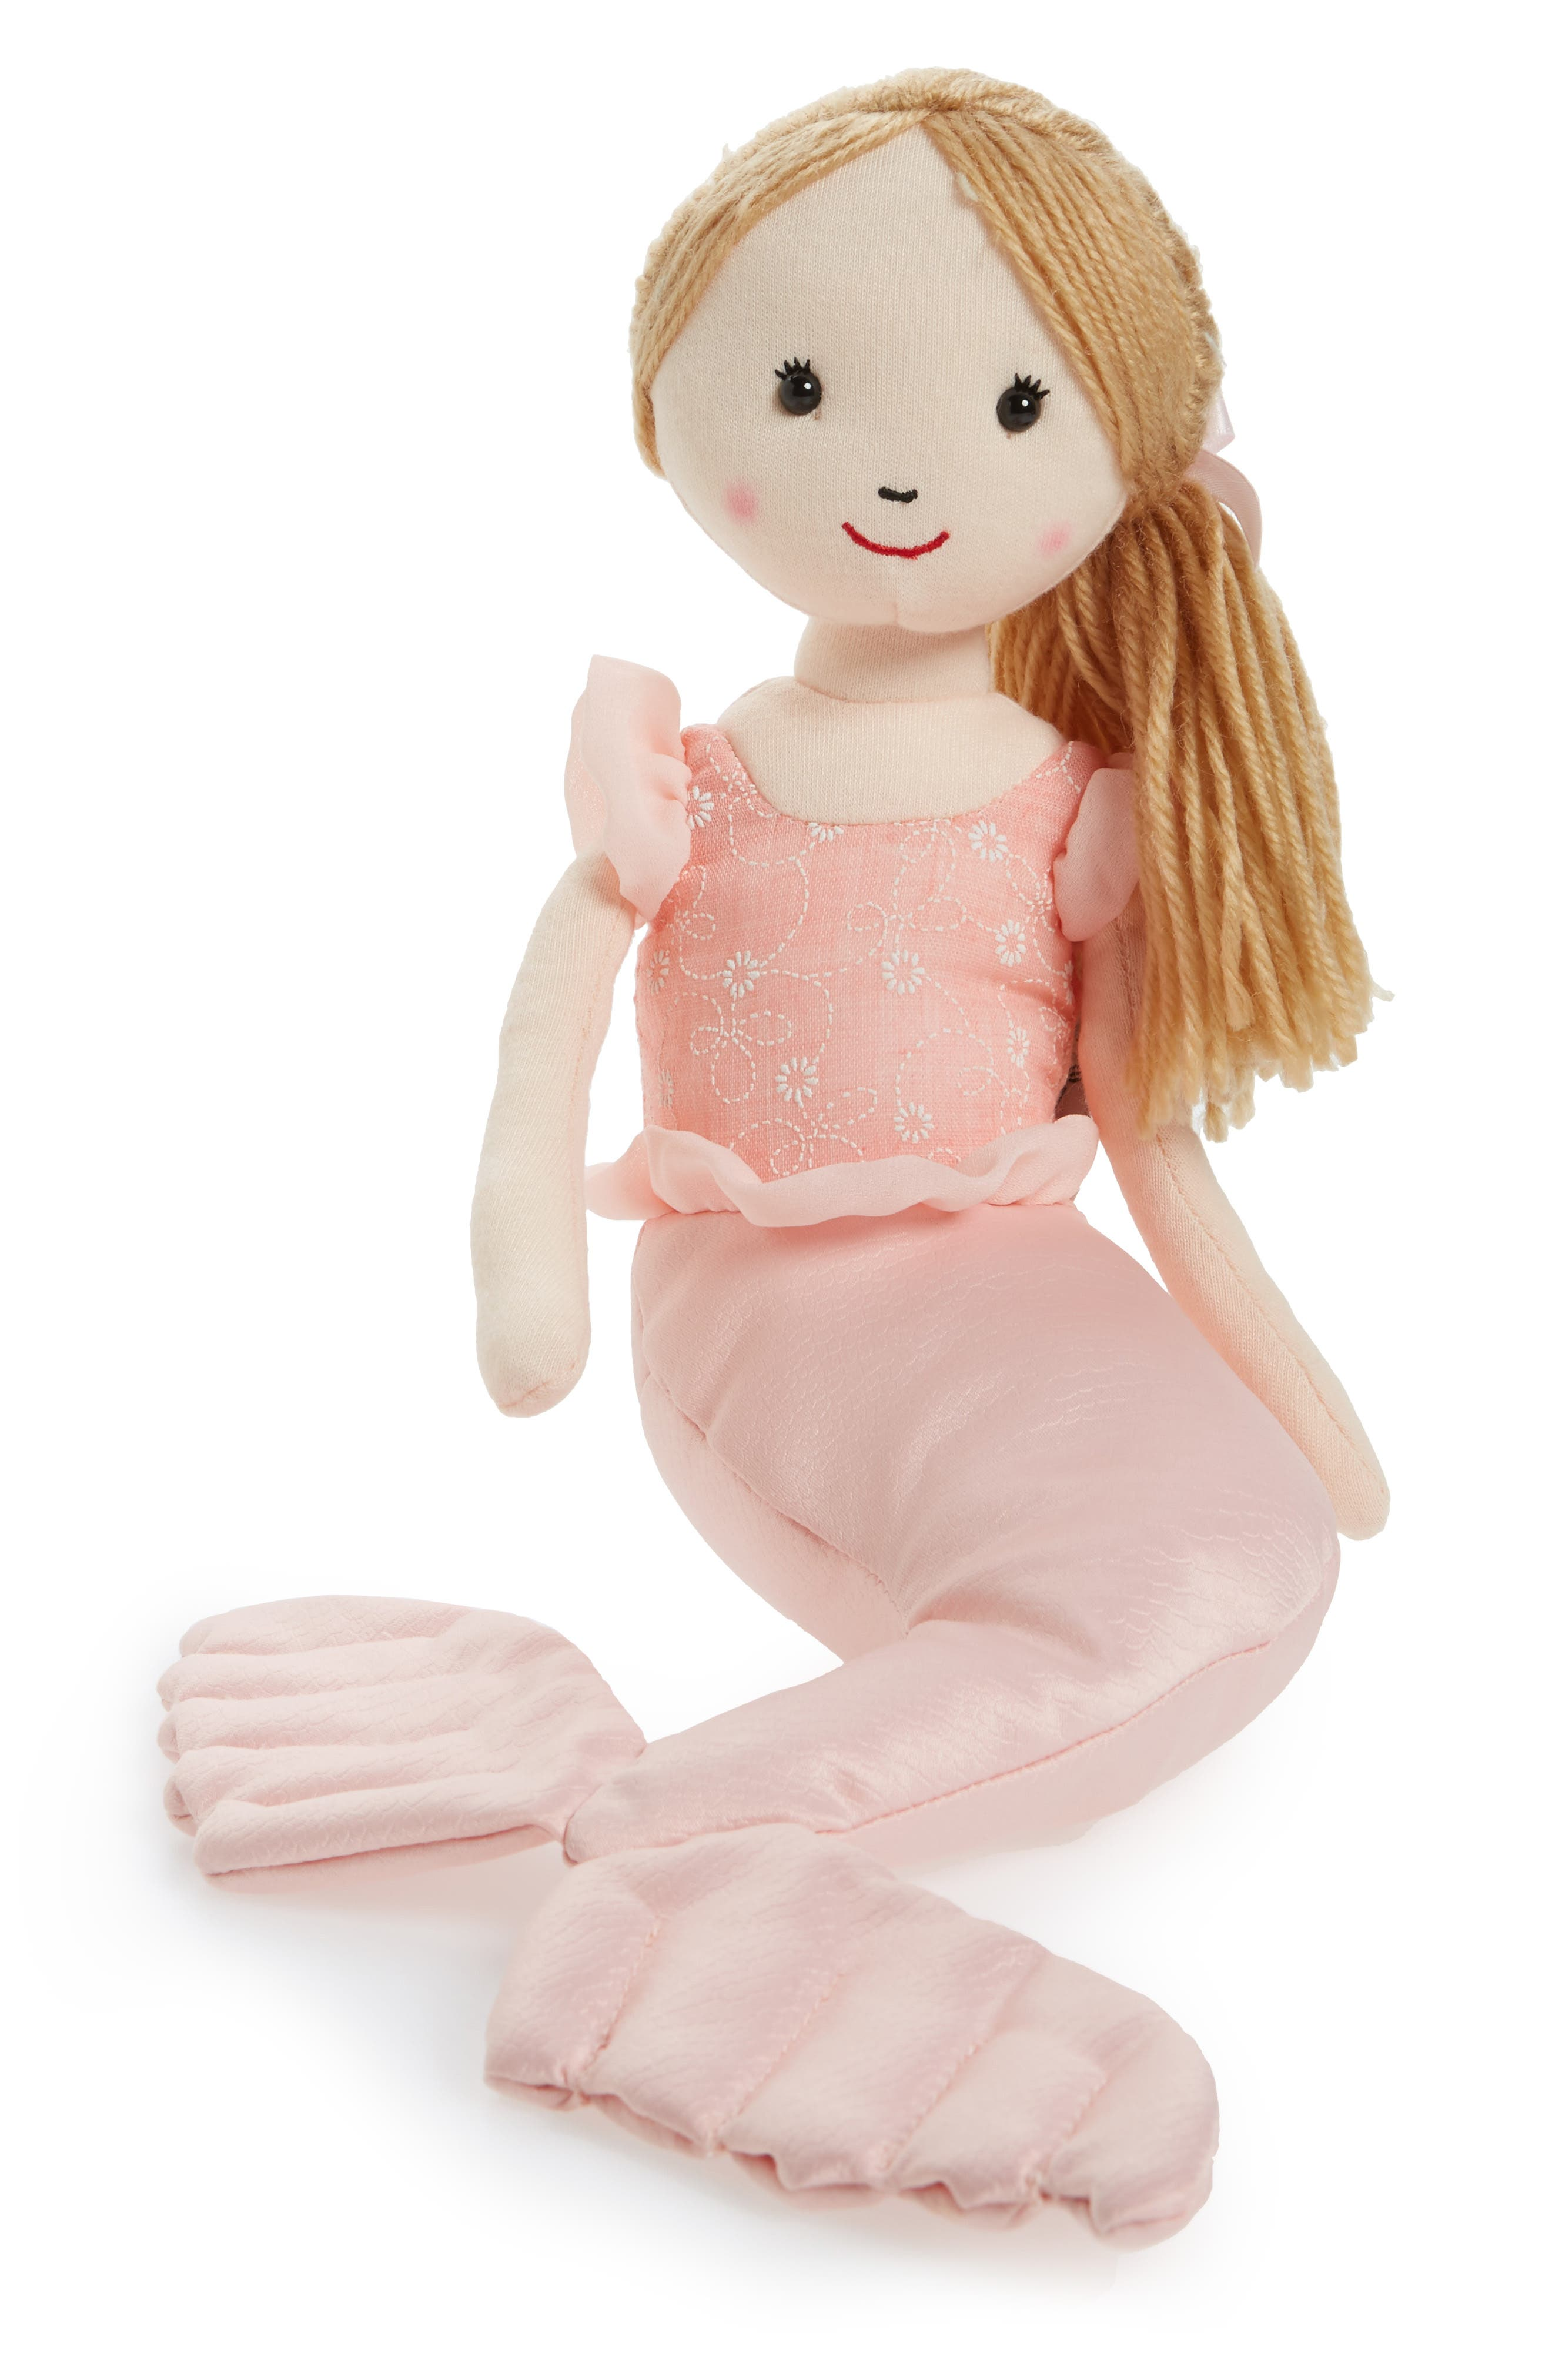 Shellbelle - Mermaid Millie Stuffed Toy,                             Main thumbnail 1, color,                             650